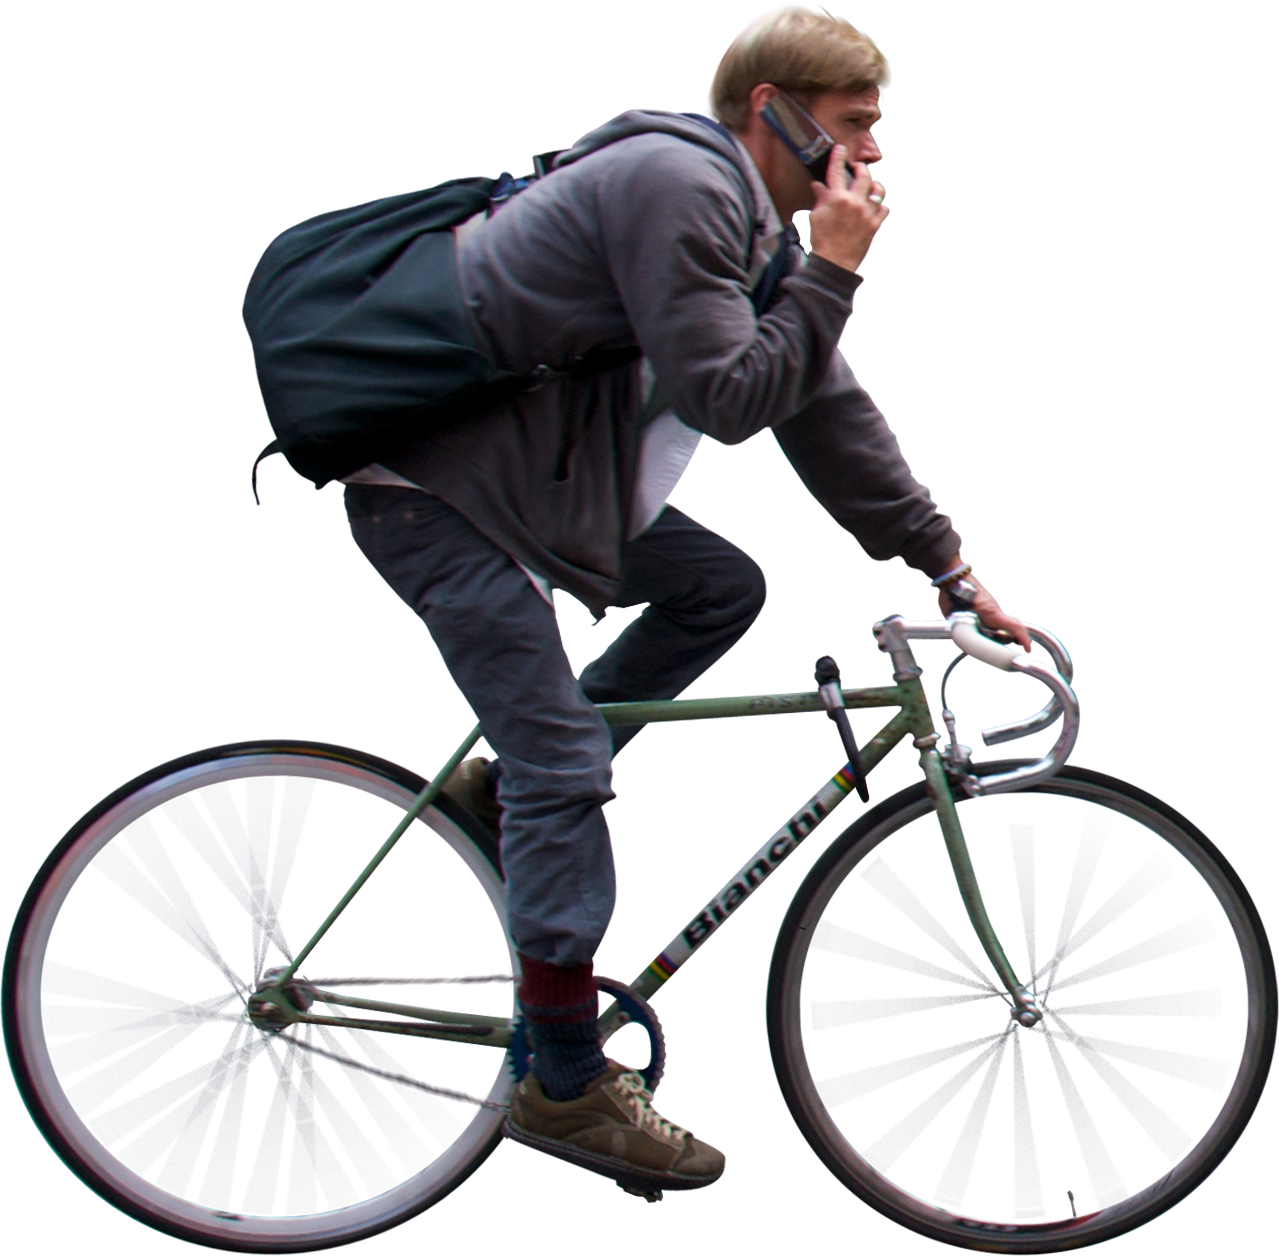 Bicycle people png. Man riding and using